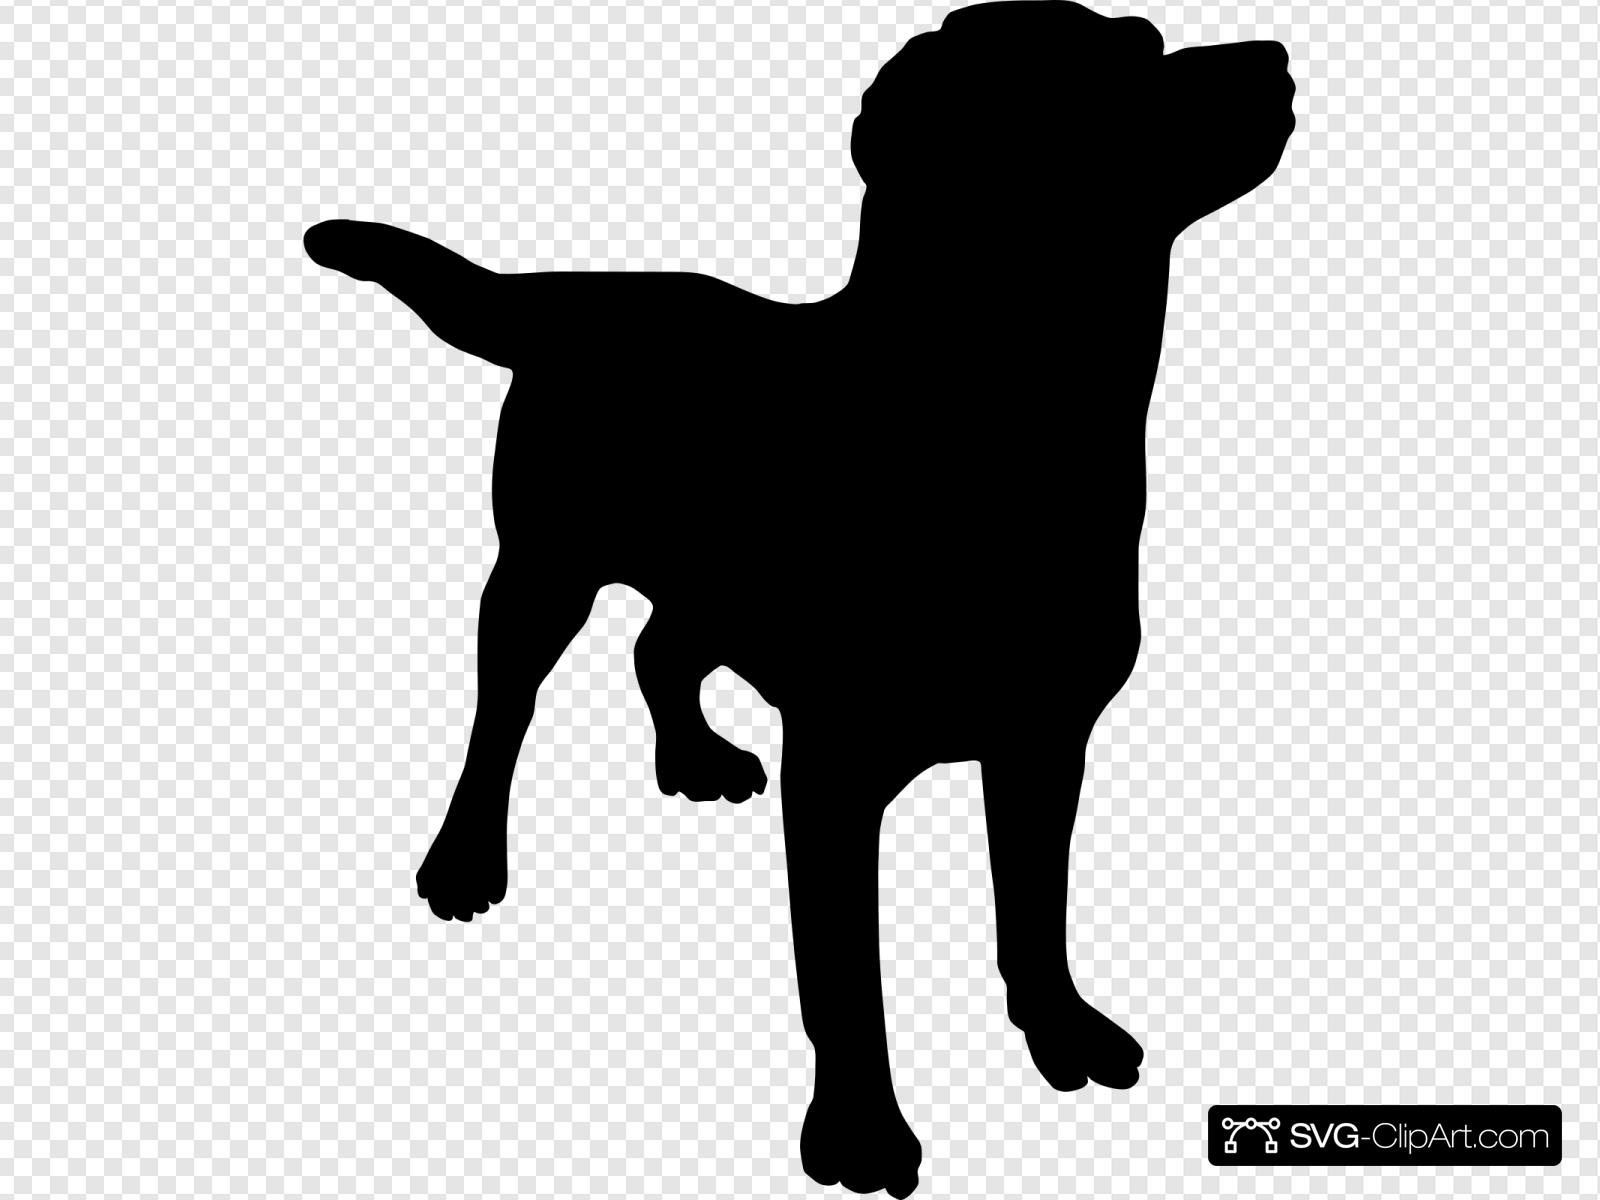 Dog Silhouette Stock Illustrations Cliparts And Royalty Free Dog